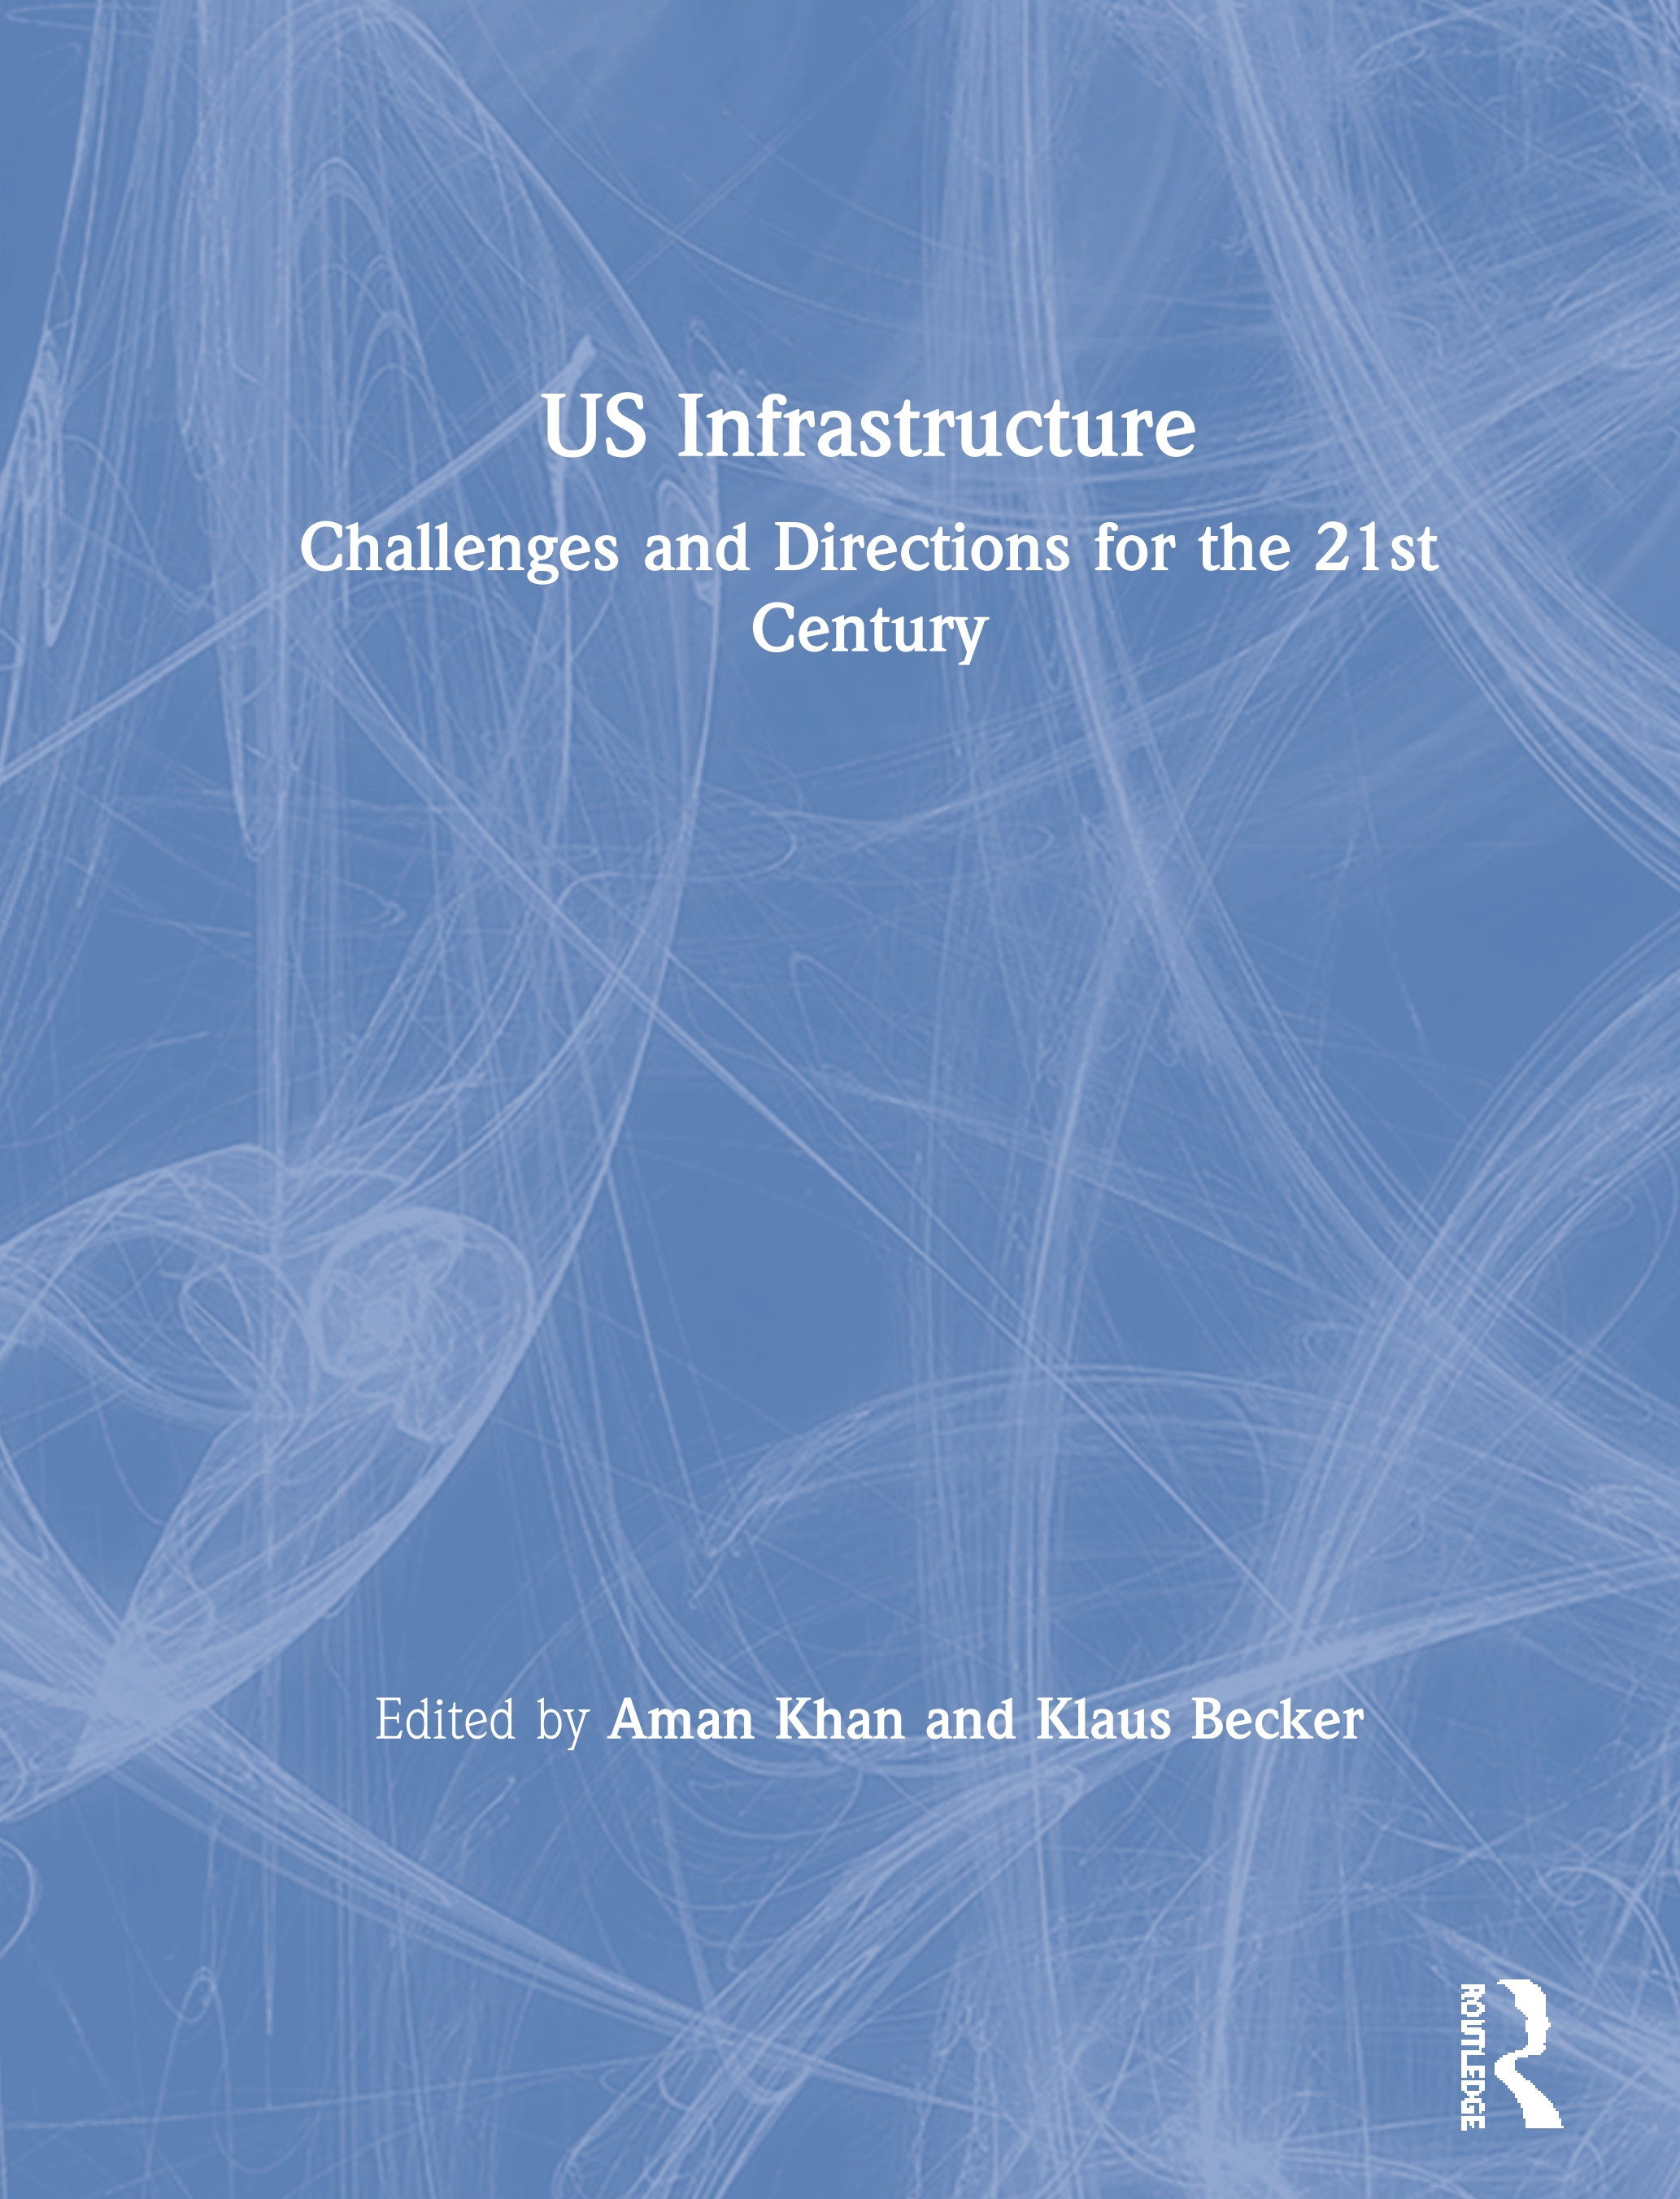 US Infrastructure